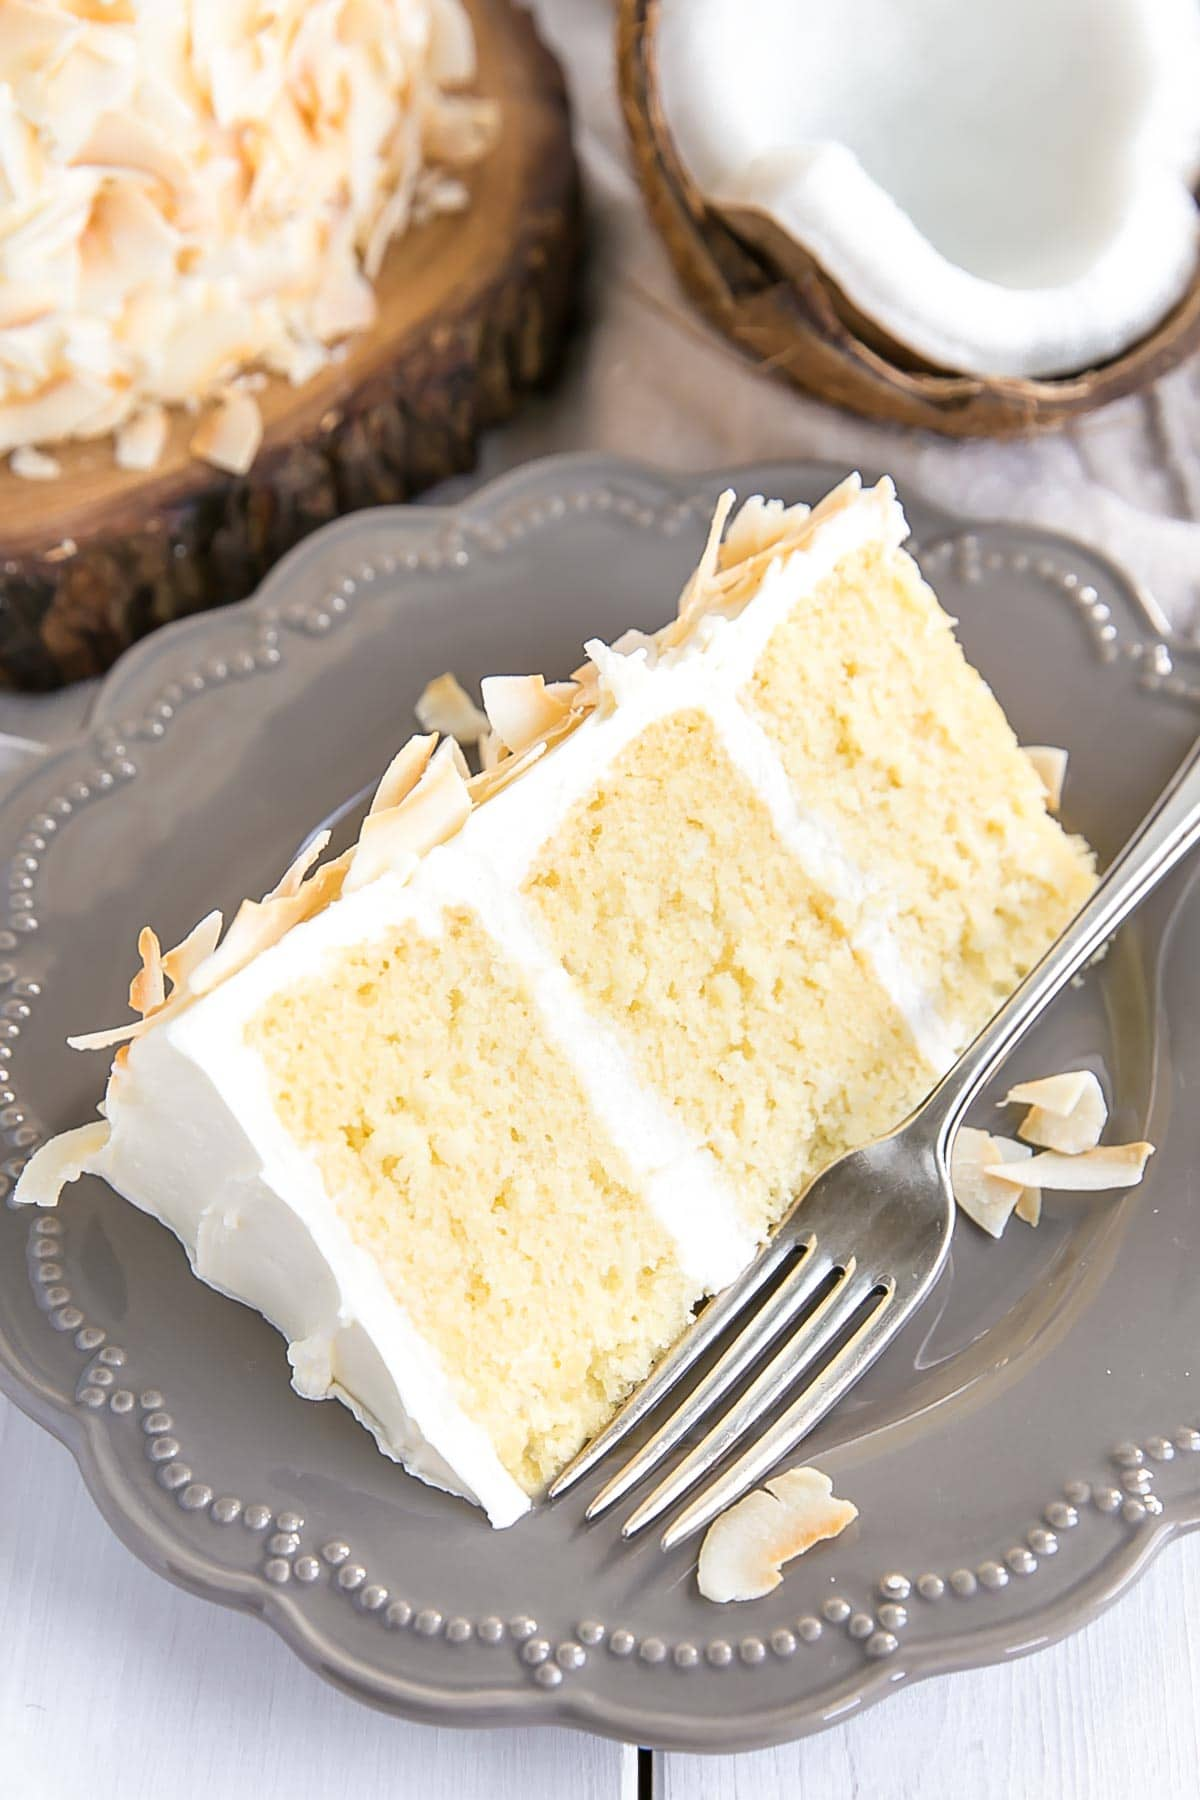 Slice of coconut cake with toasted coconut flakes.